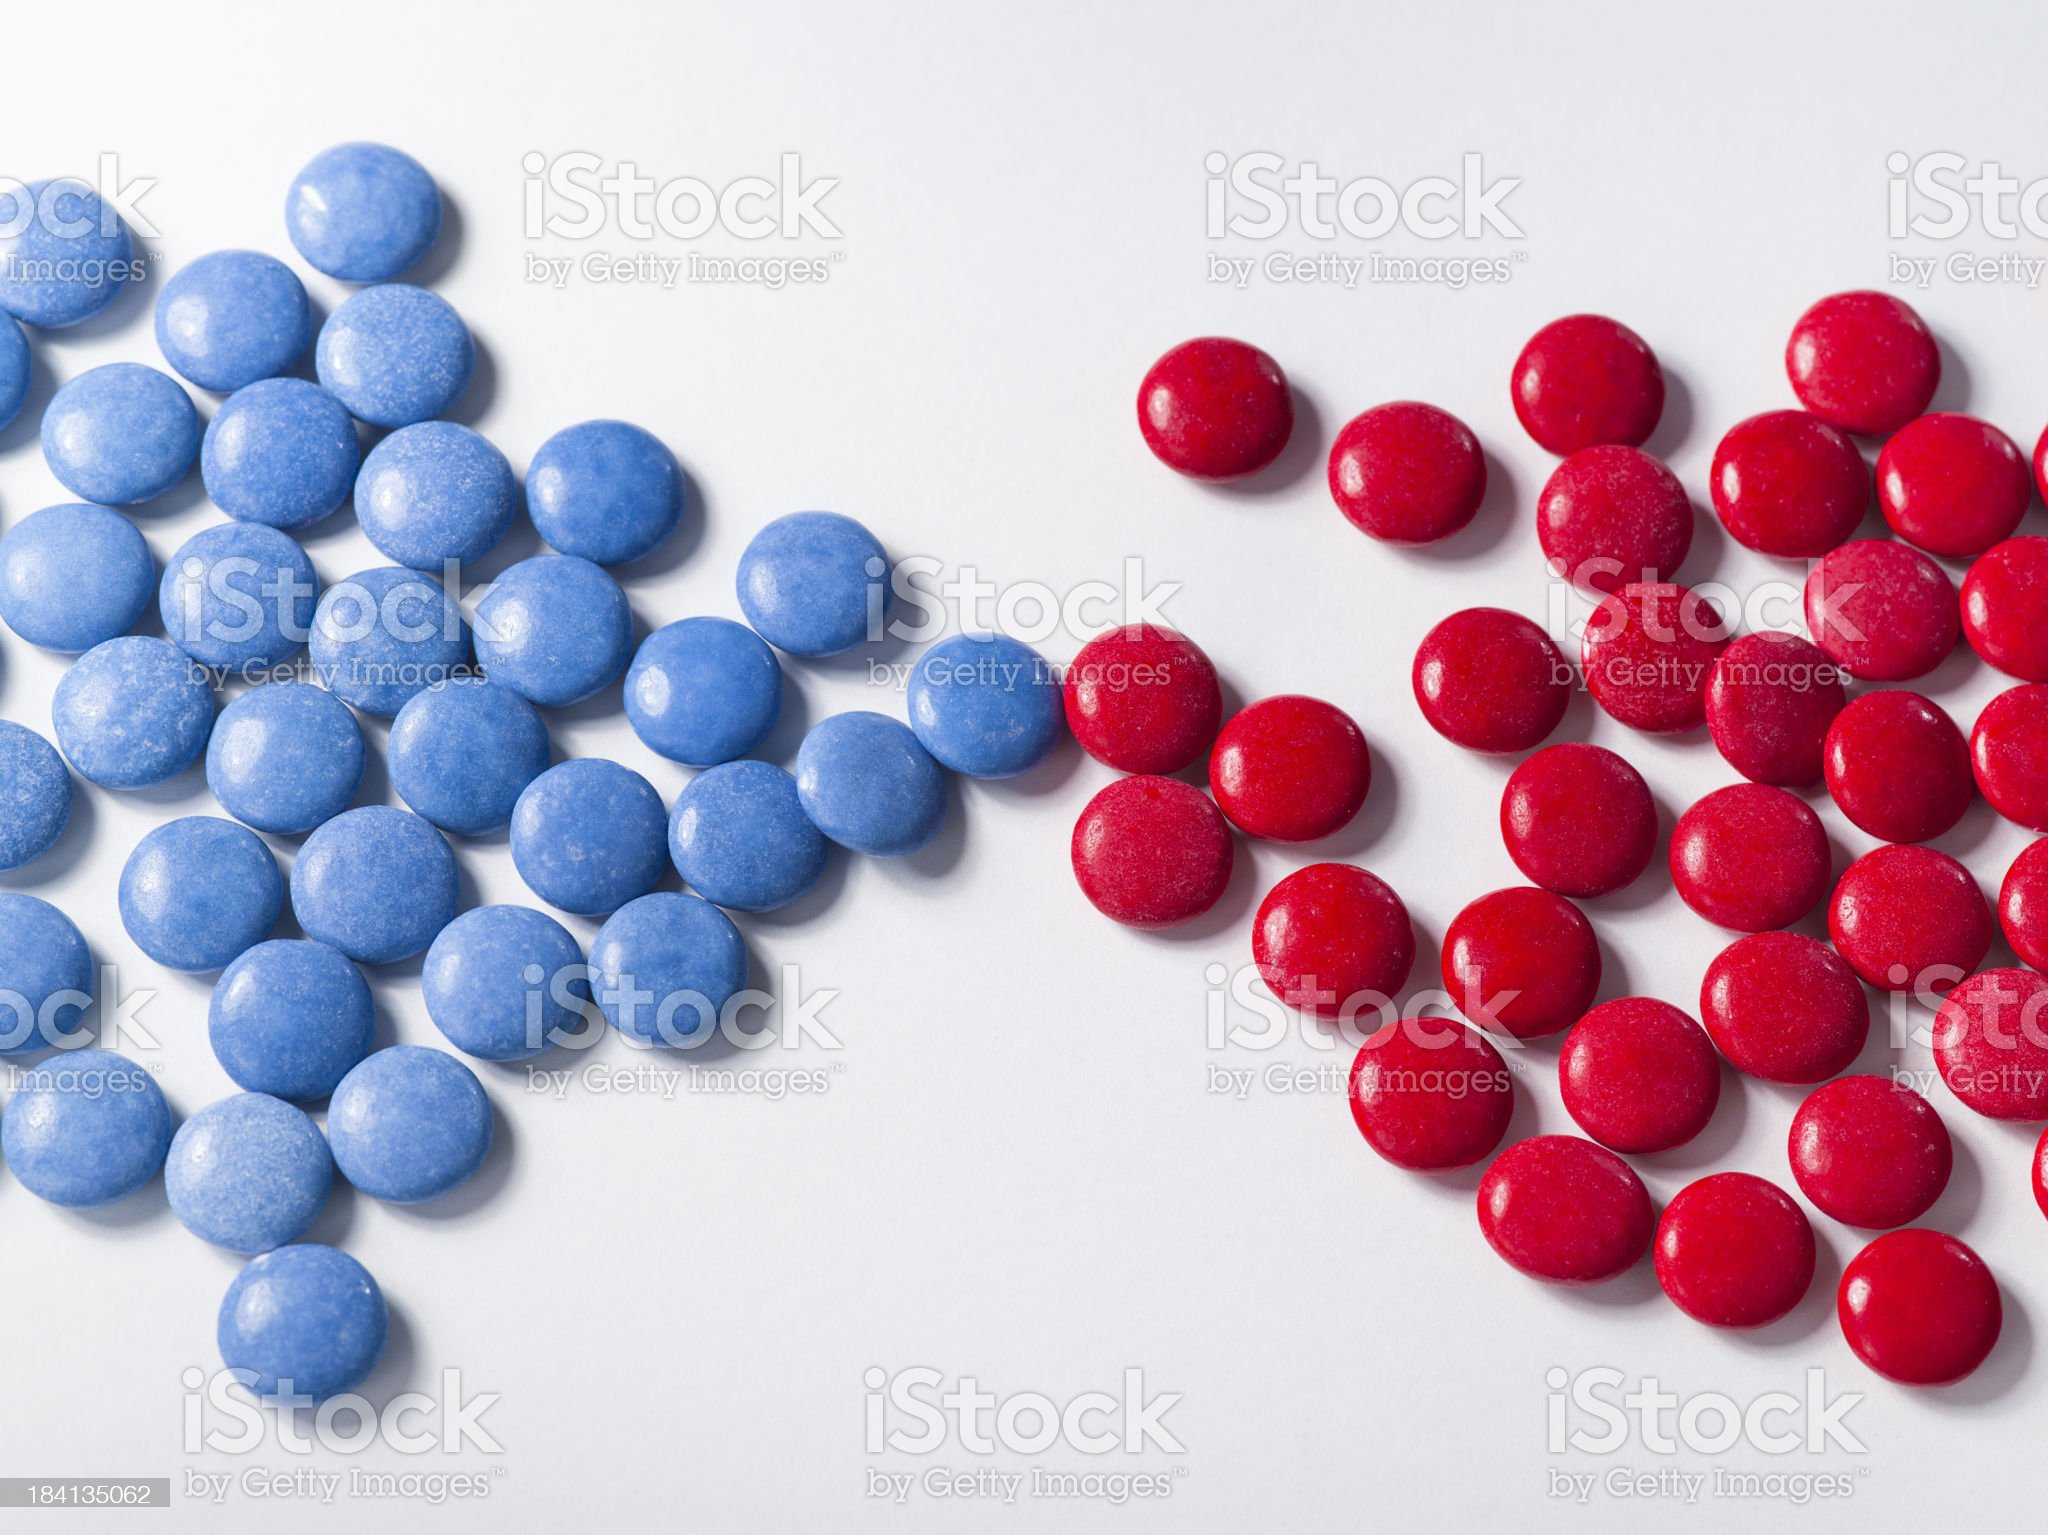 Blue candy with colorful red chocolates royalty-free stock photo